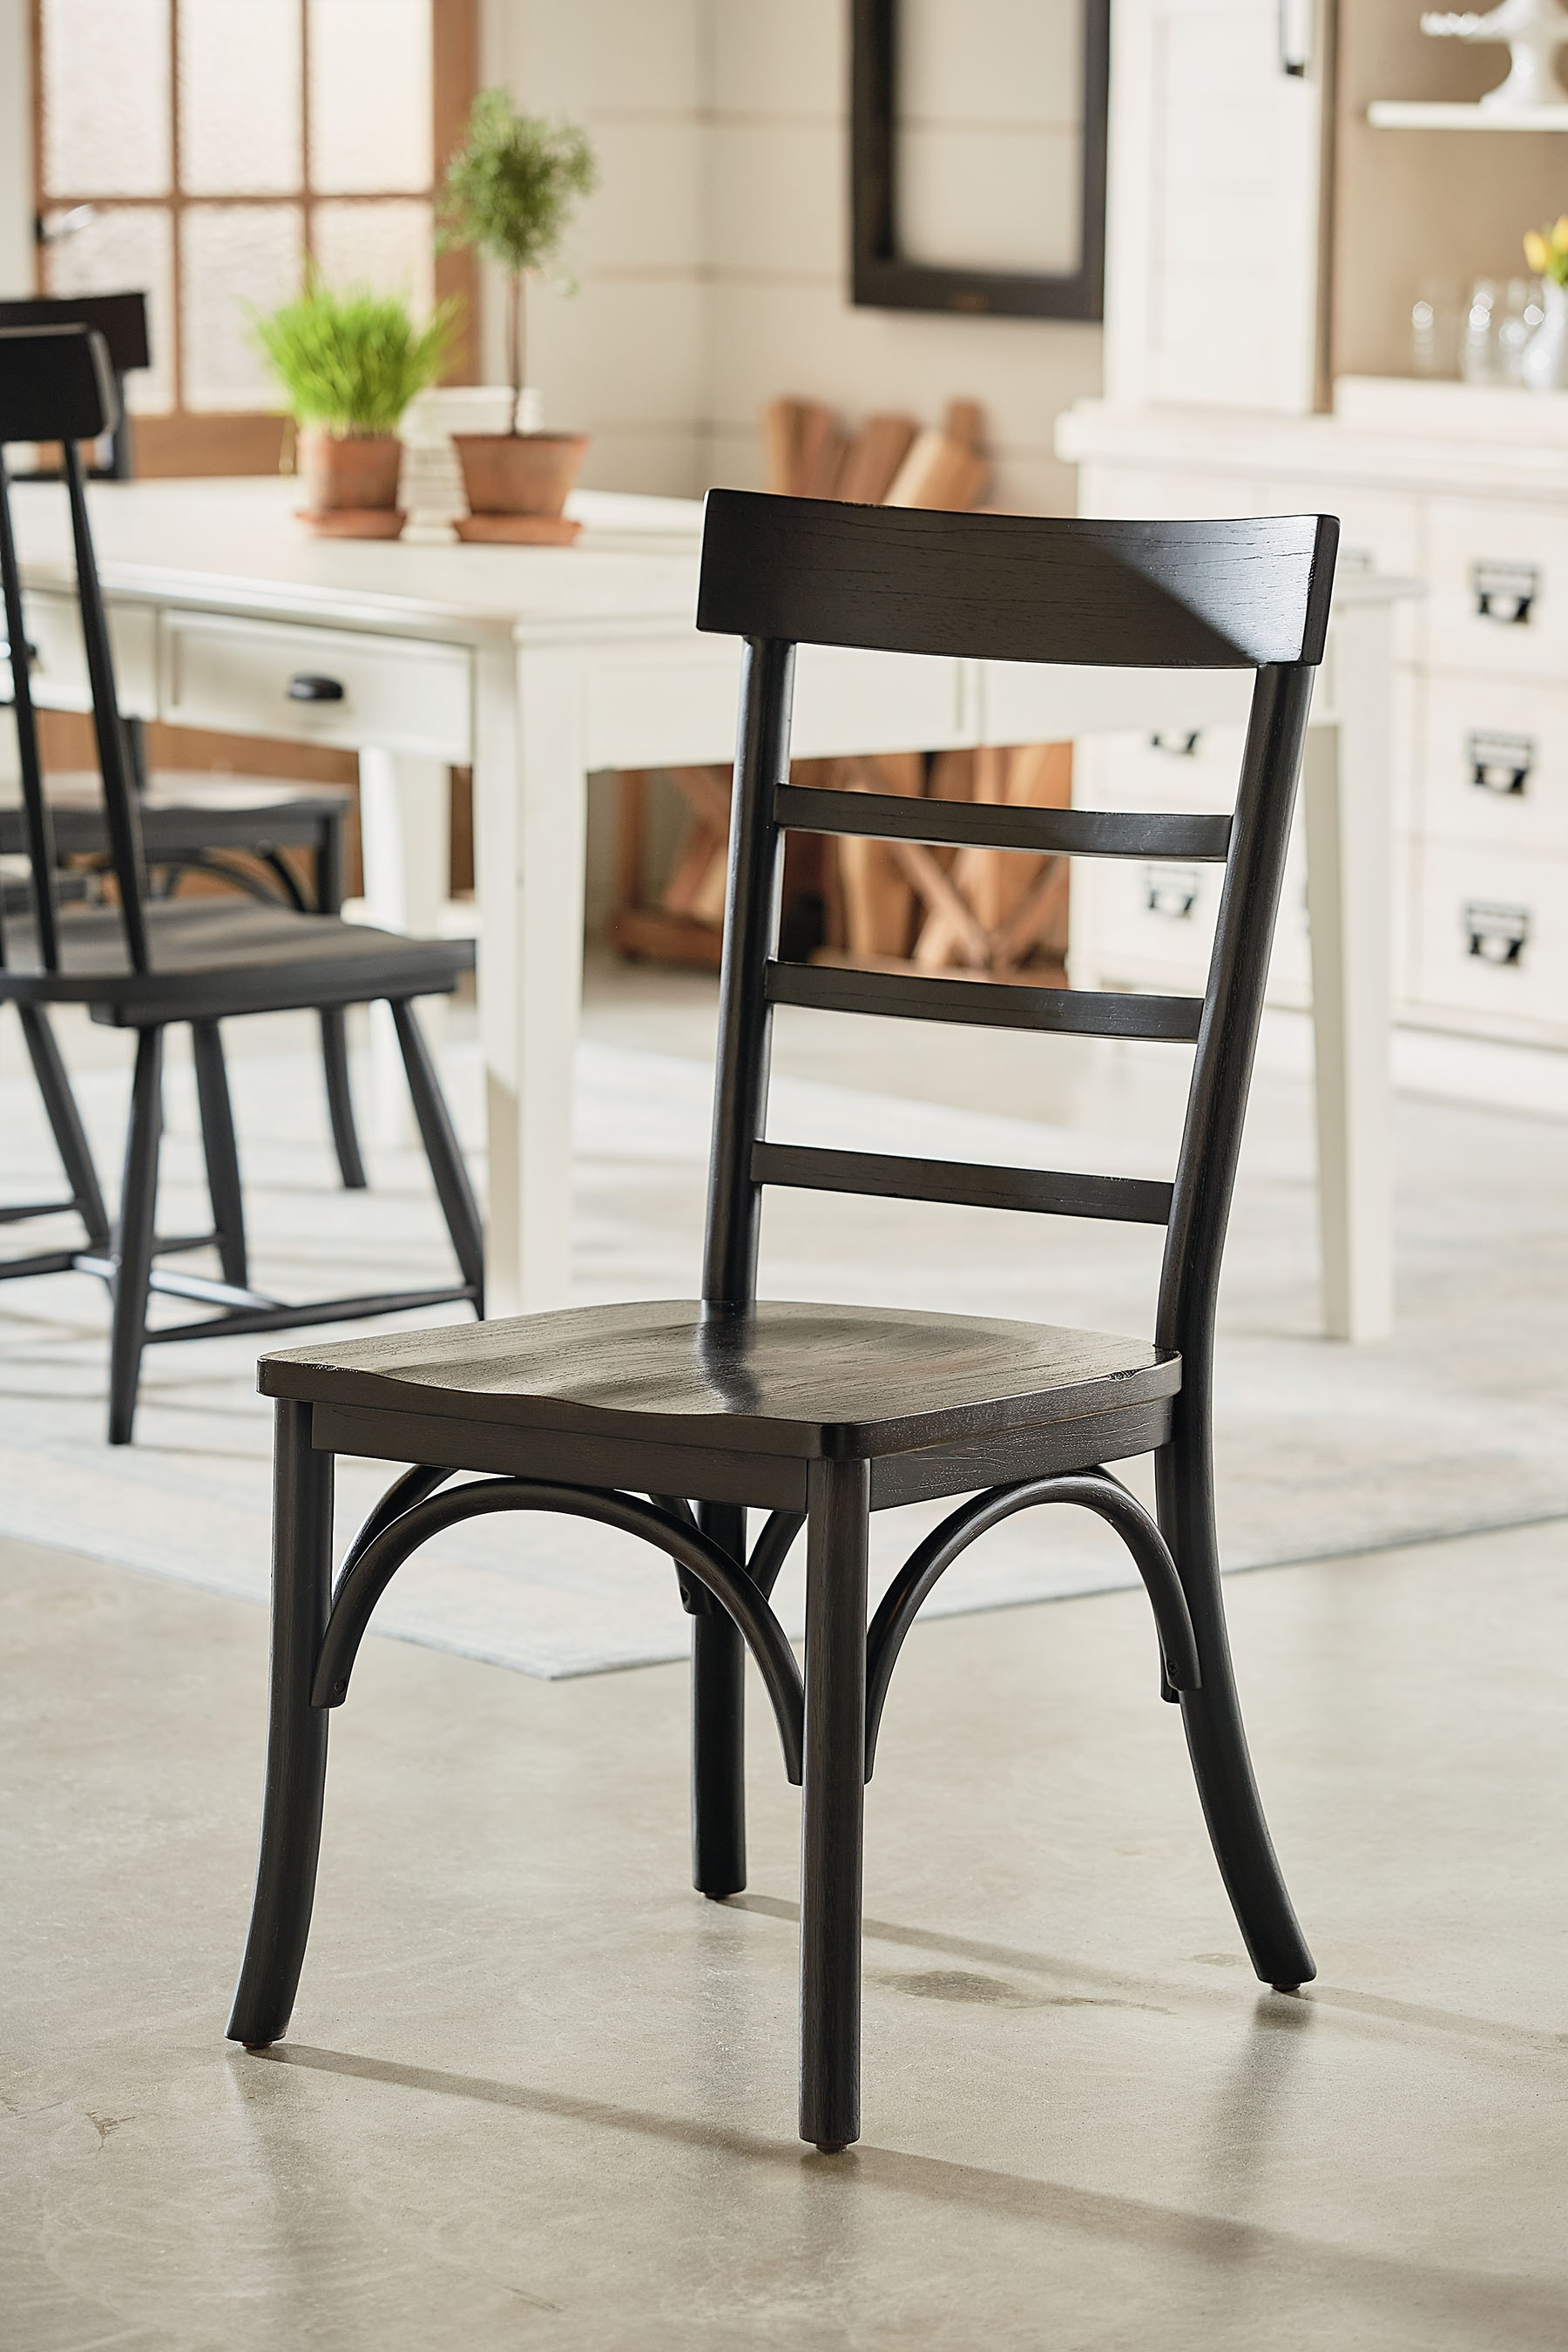 Widely Used Magnolia Home Harper Patina Side Chairs With Regard To Harper Side Chair – Magnolia Home (View 20 of 20)